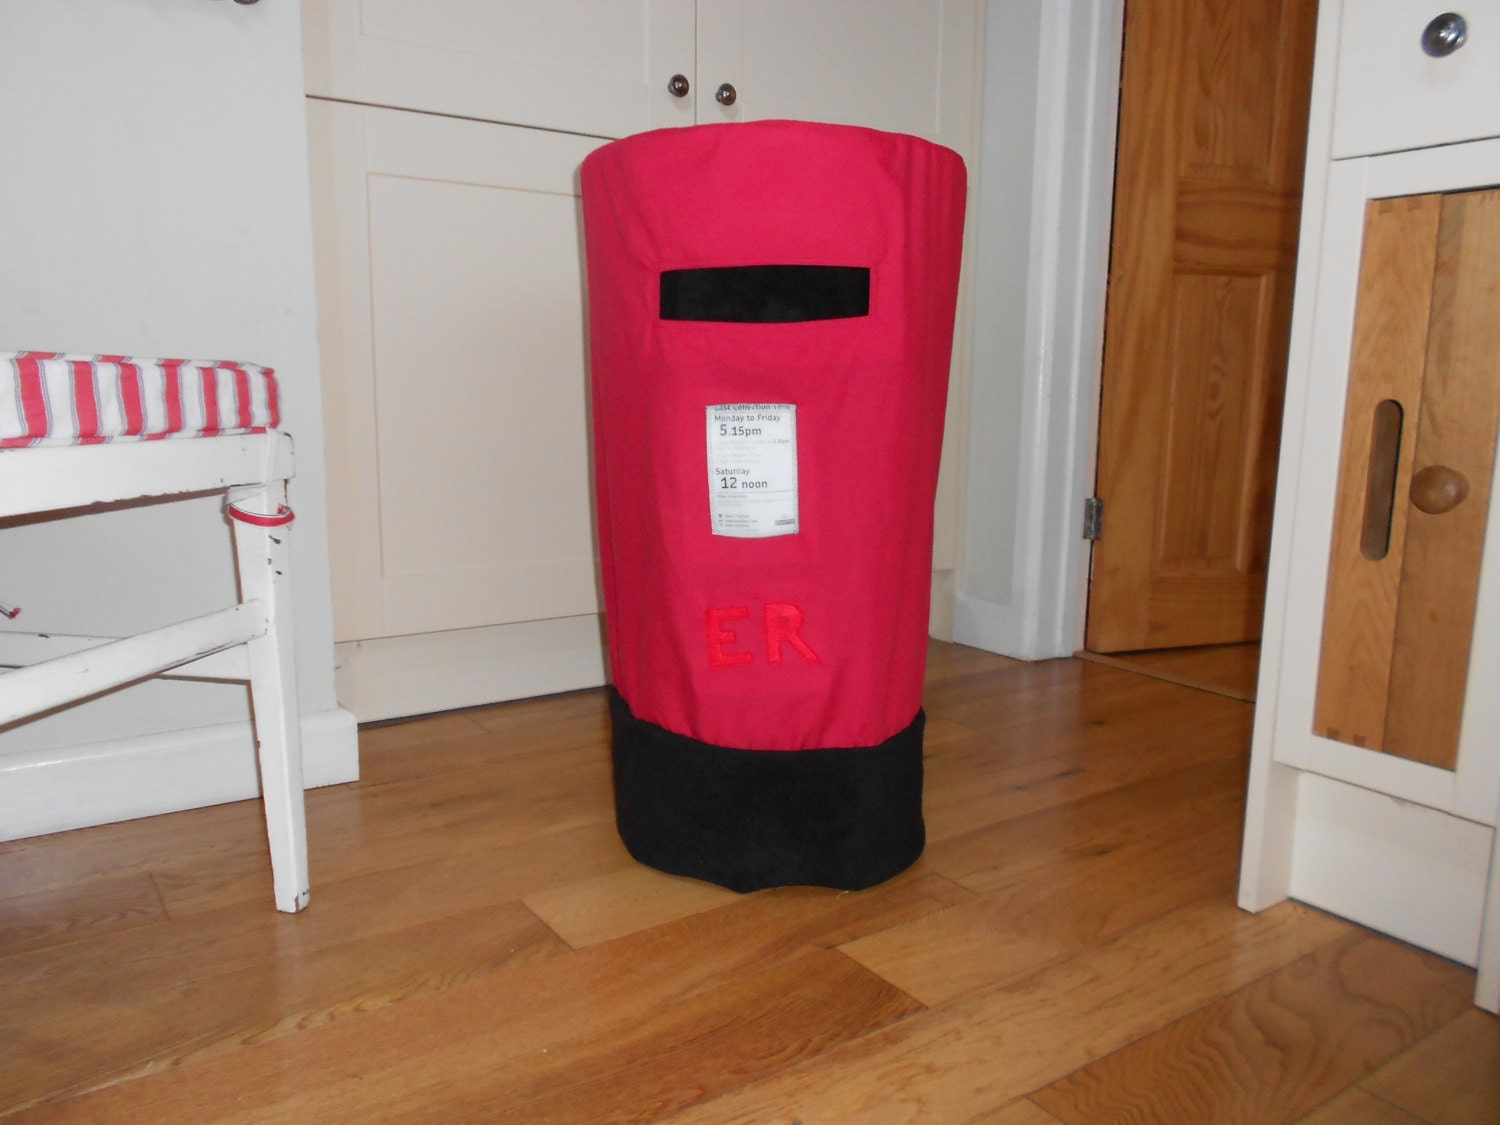 Kitchen Stool Postbox Cover. Childs Dual Purpose RolePlaying Fabric Letterbox.Kitchen Bin Cover. Tablecloth Pilllarbox